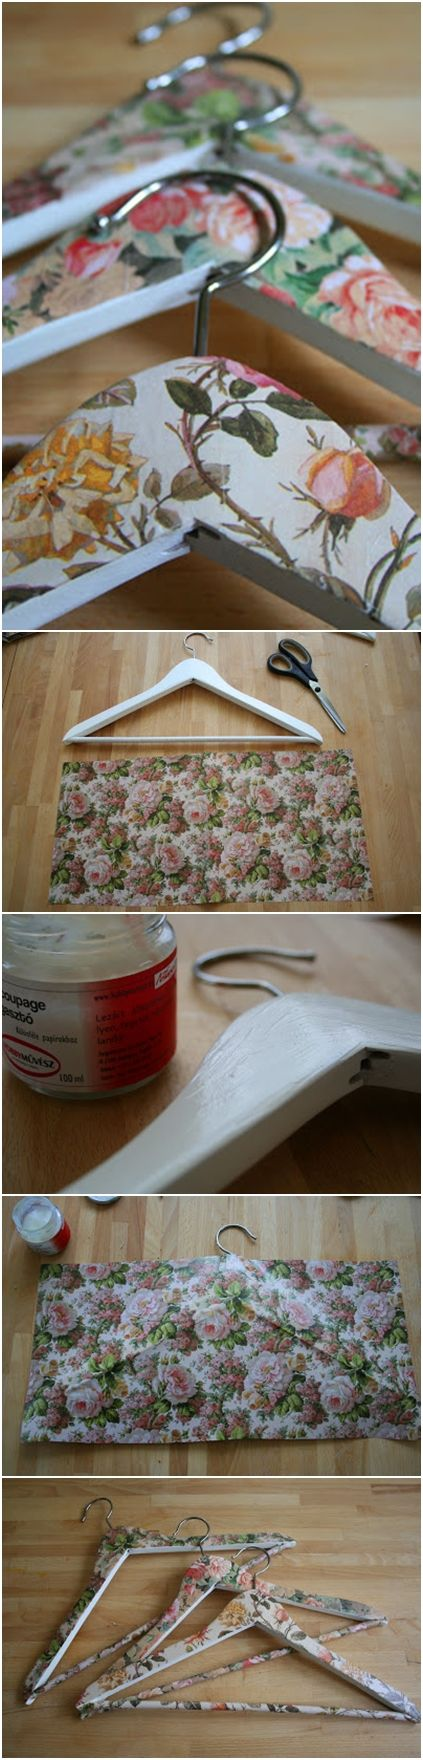 Decoupage con perchas